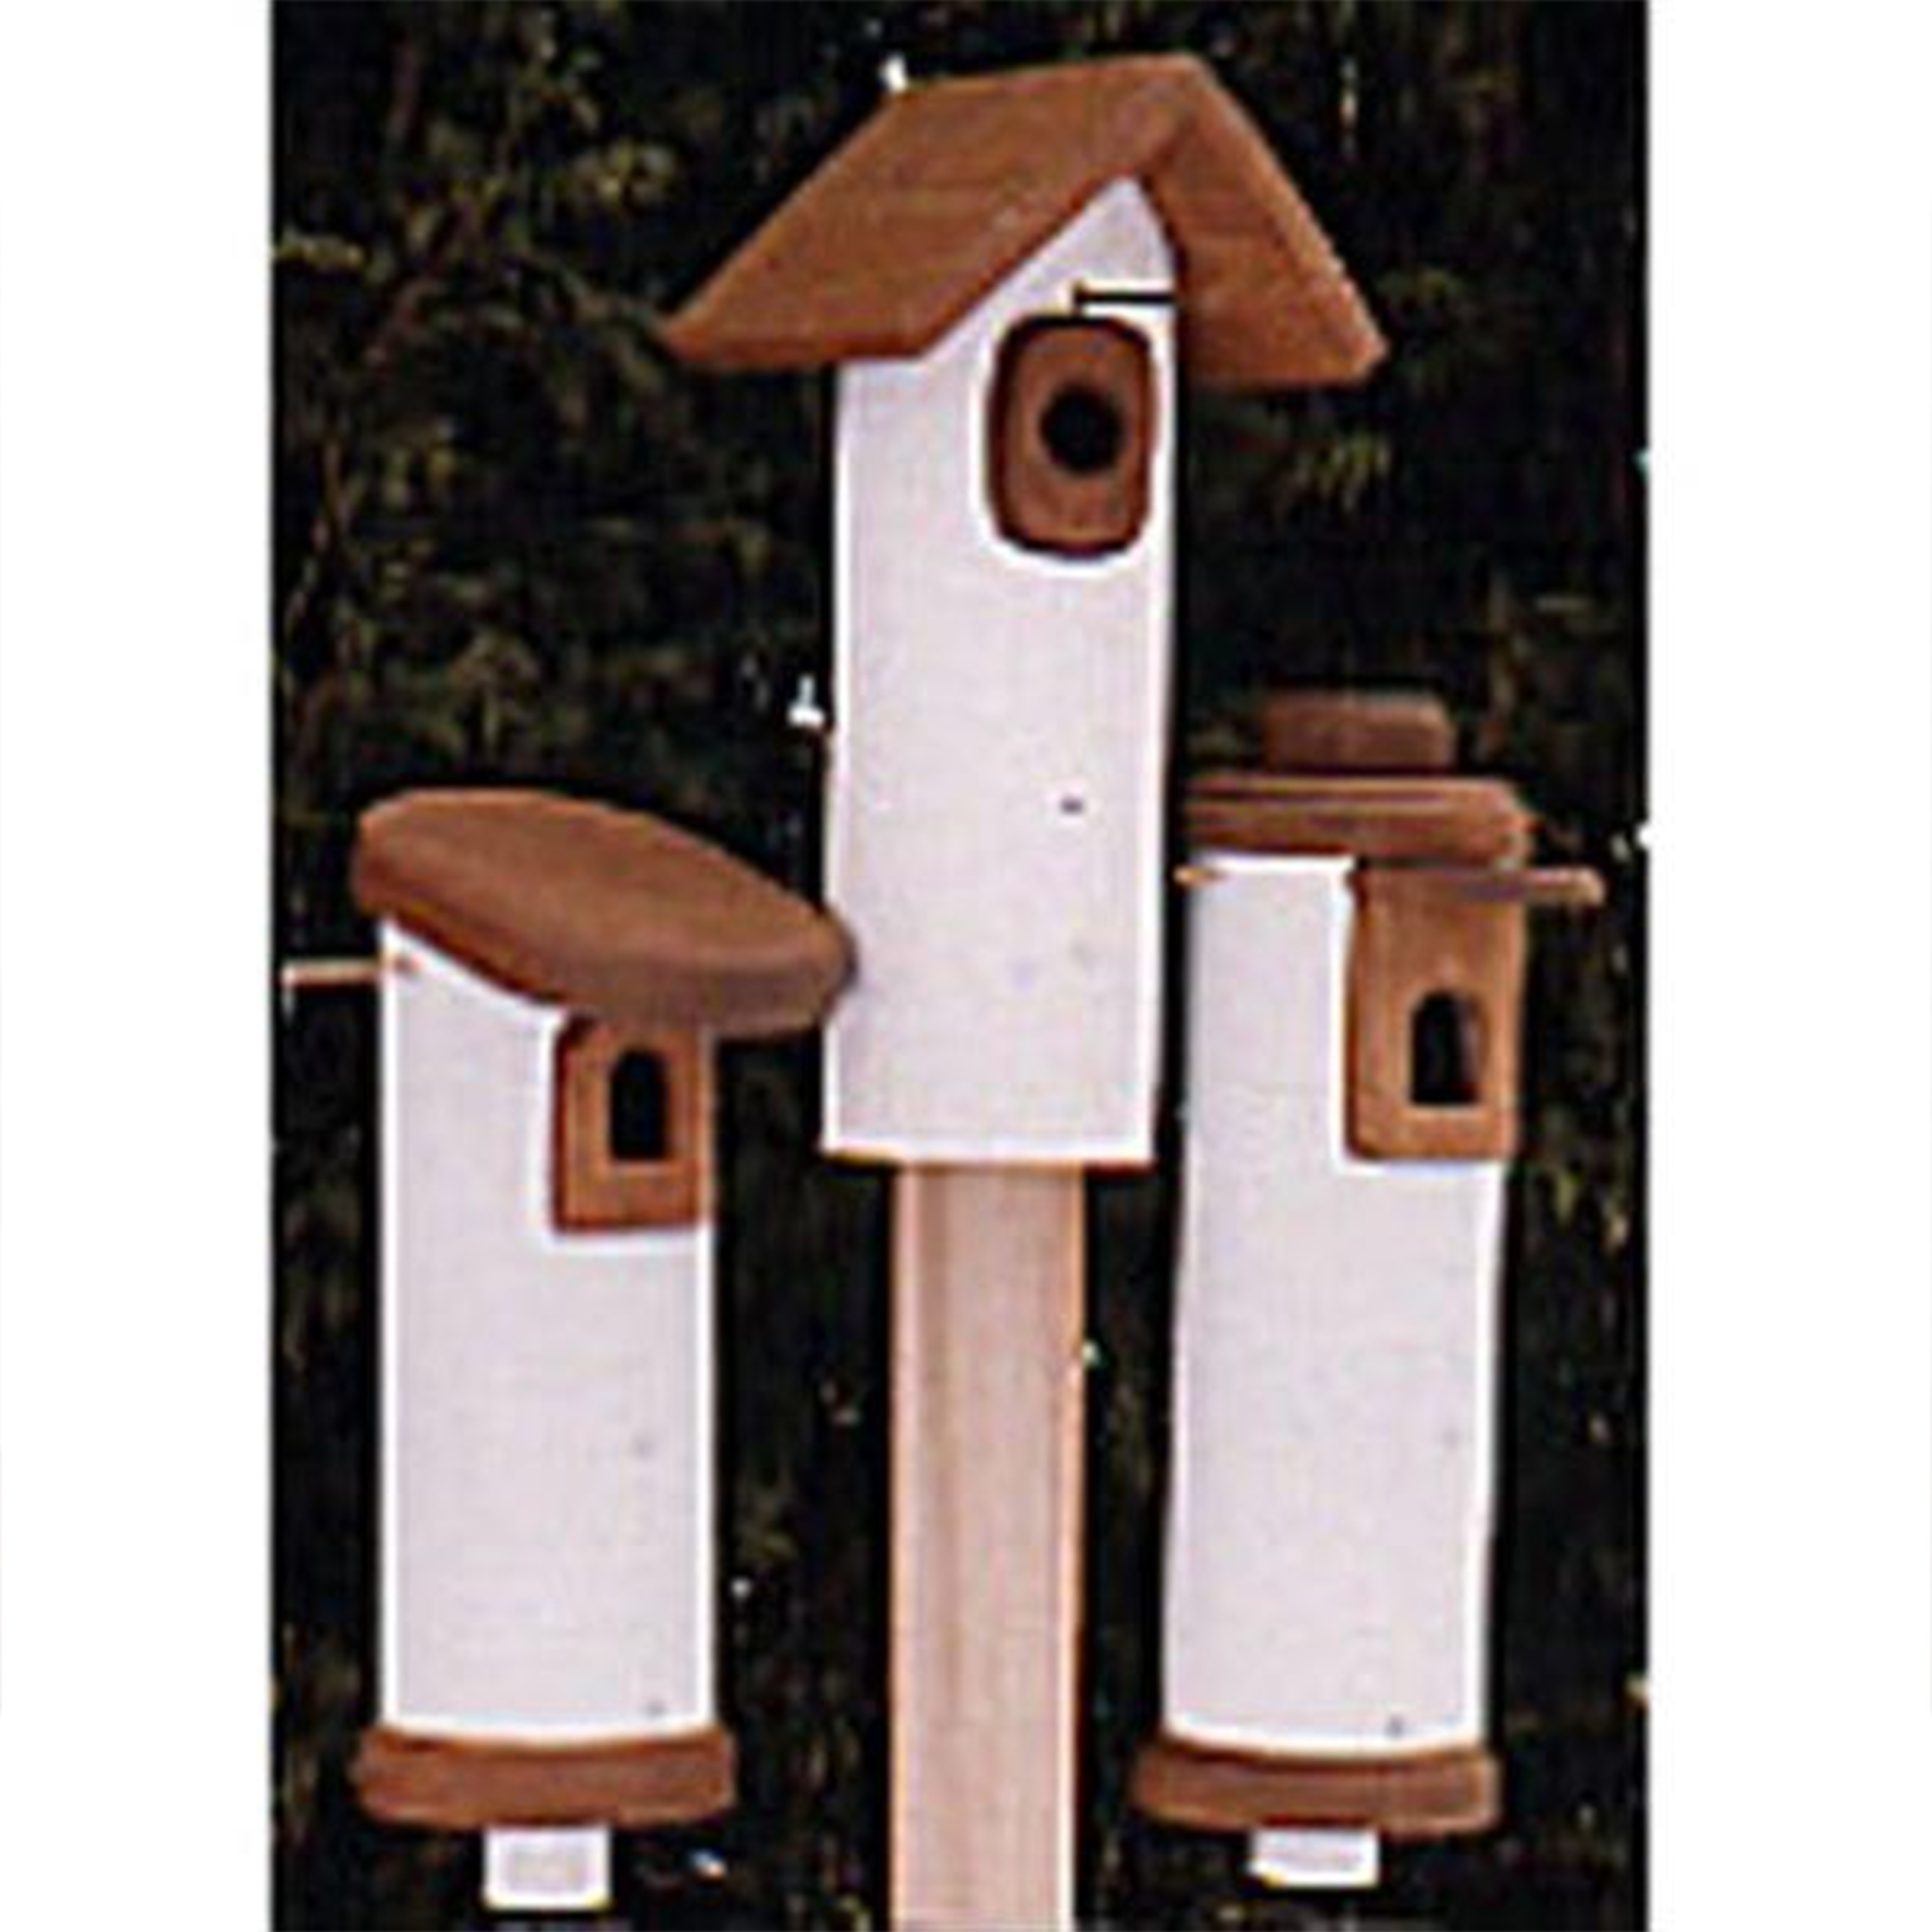 Woodworking Project Paper Plan to Build PVC Bluebird Houses